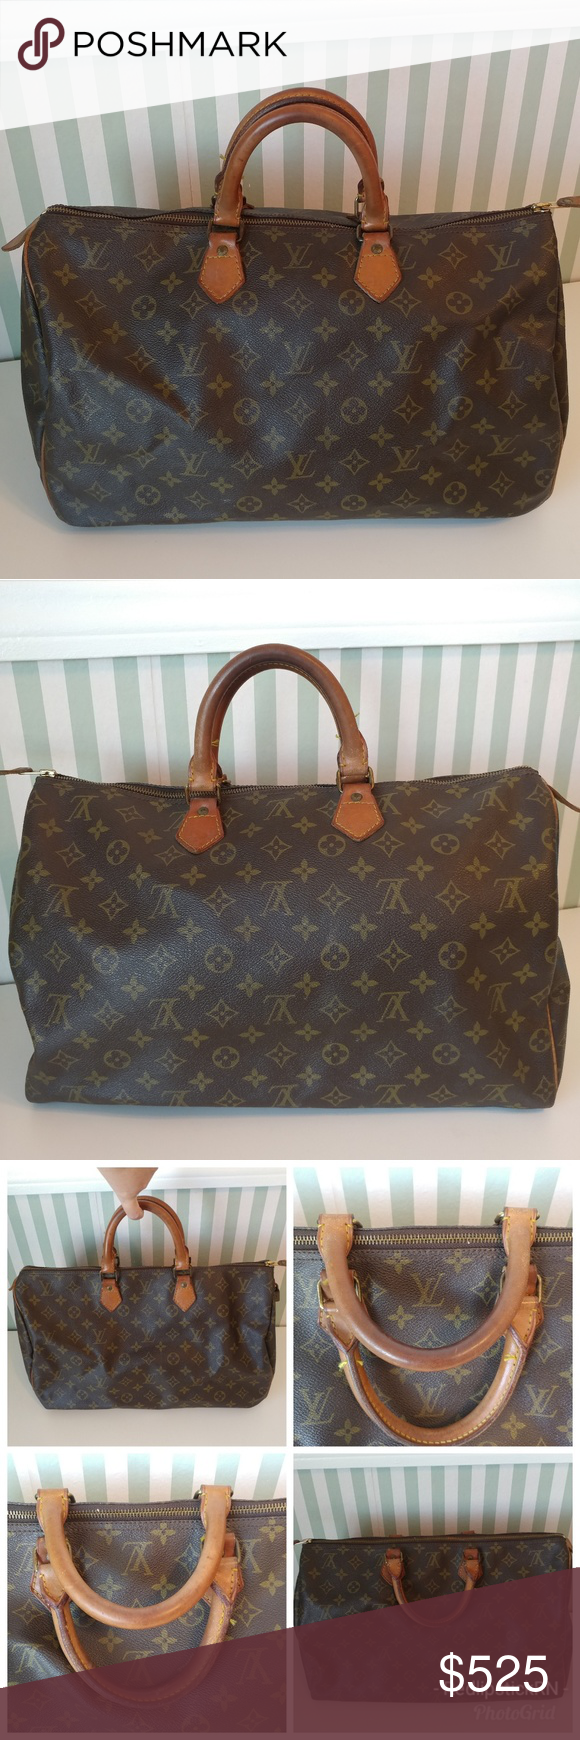 f94ef2e0b125 Authentic Louis Vuitton True Vintage Speedy 40 Bag This gorgeous authentic  Louis Vuitton Monogram Speedy 40